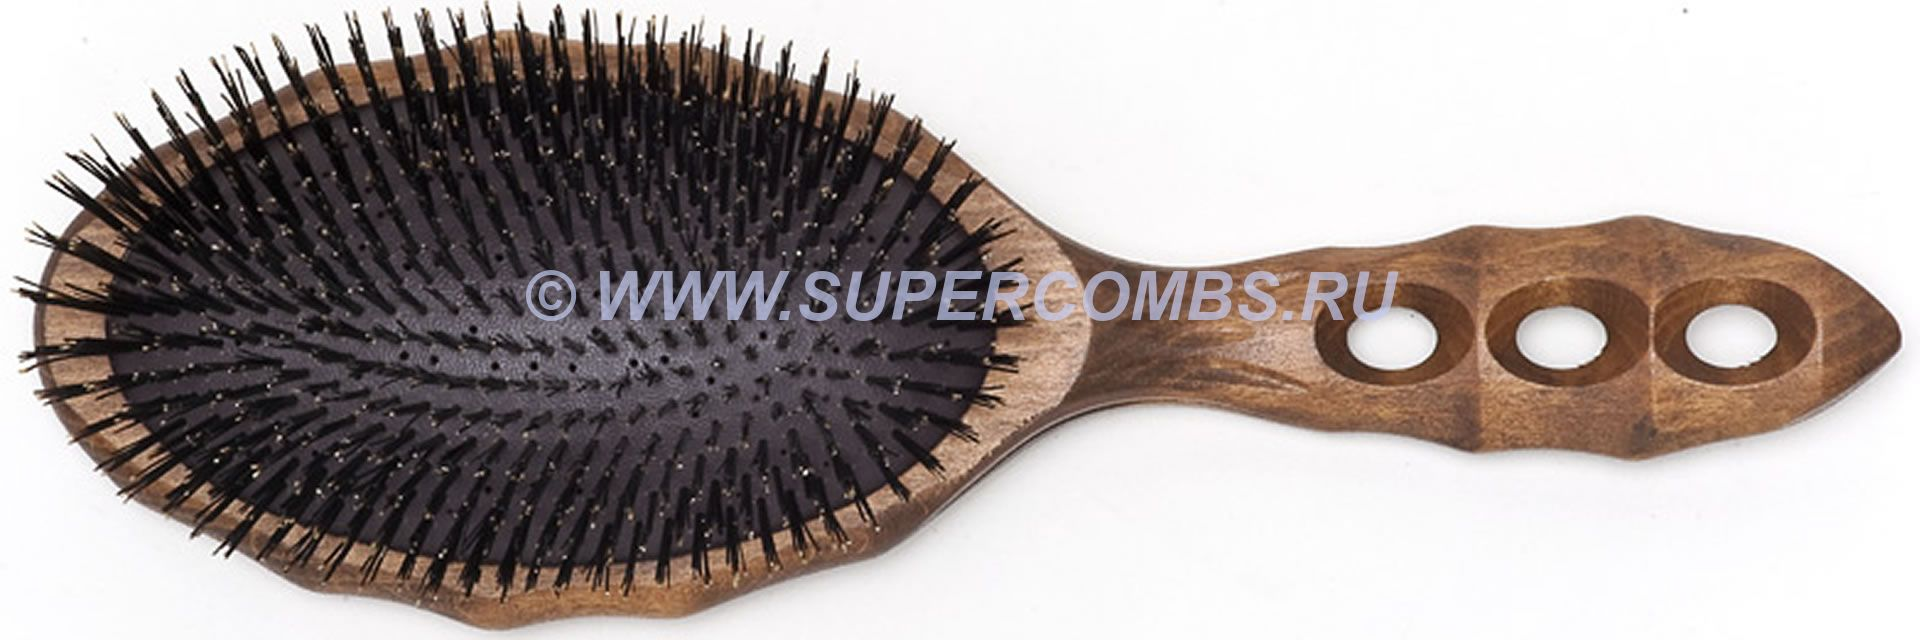 Щётка Y.S.Park 120CS1 Tortoise Brush, 11 рядов